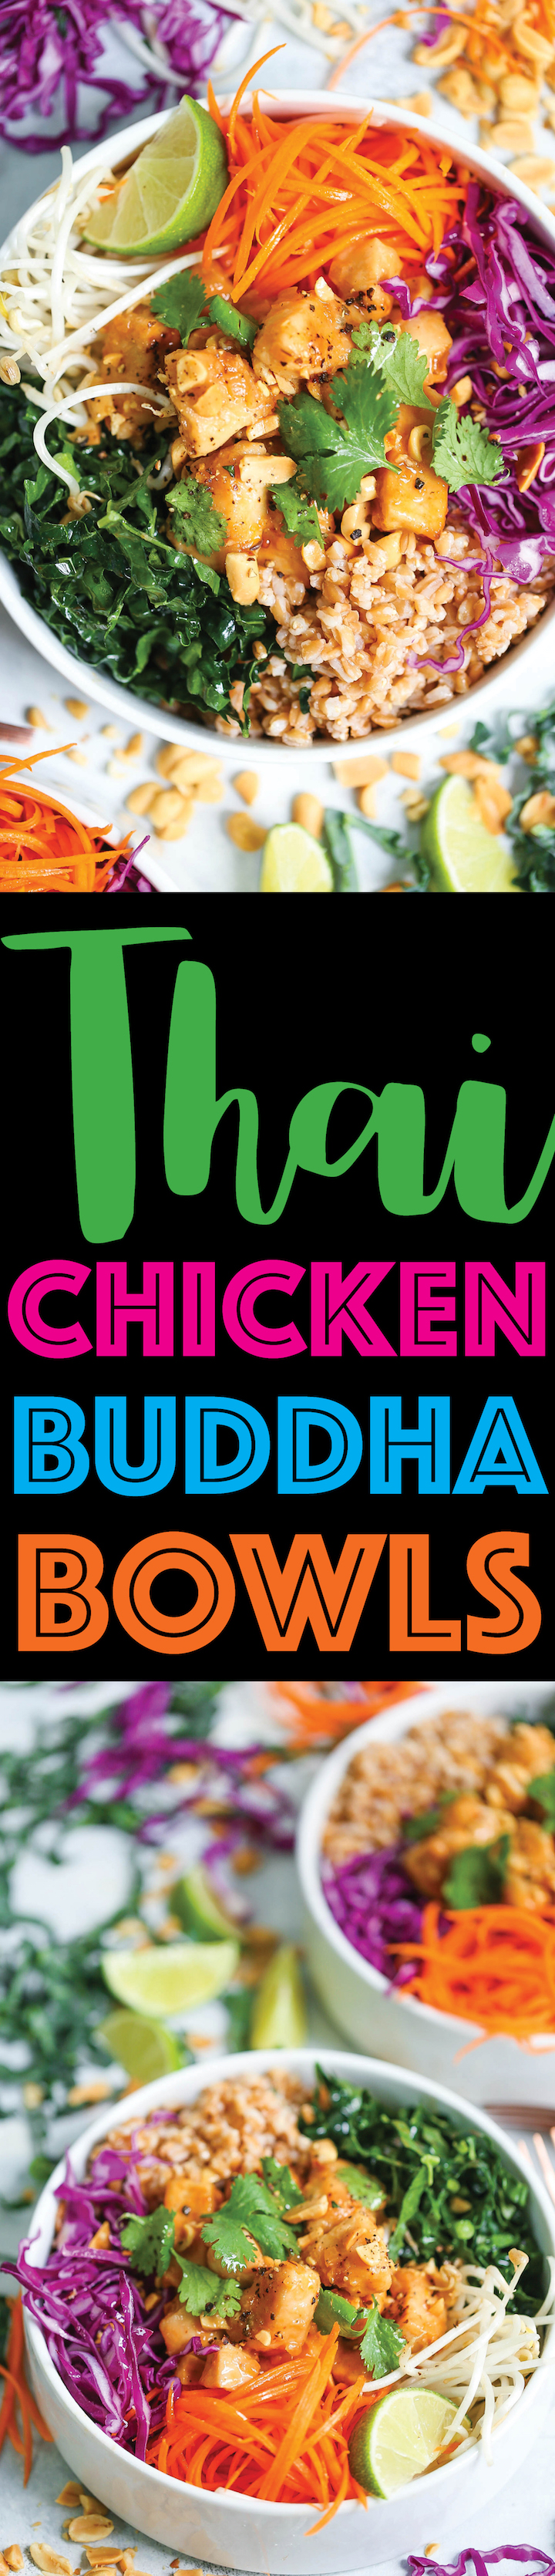 Thai Chicken Buddha Bowls -Healthy, hearty and nutritious bowls filled with whole grains, plenty of veggies, and a simple peanut sauce that is absolutely to die for!